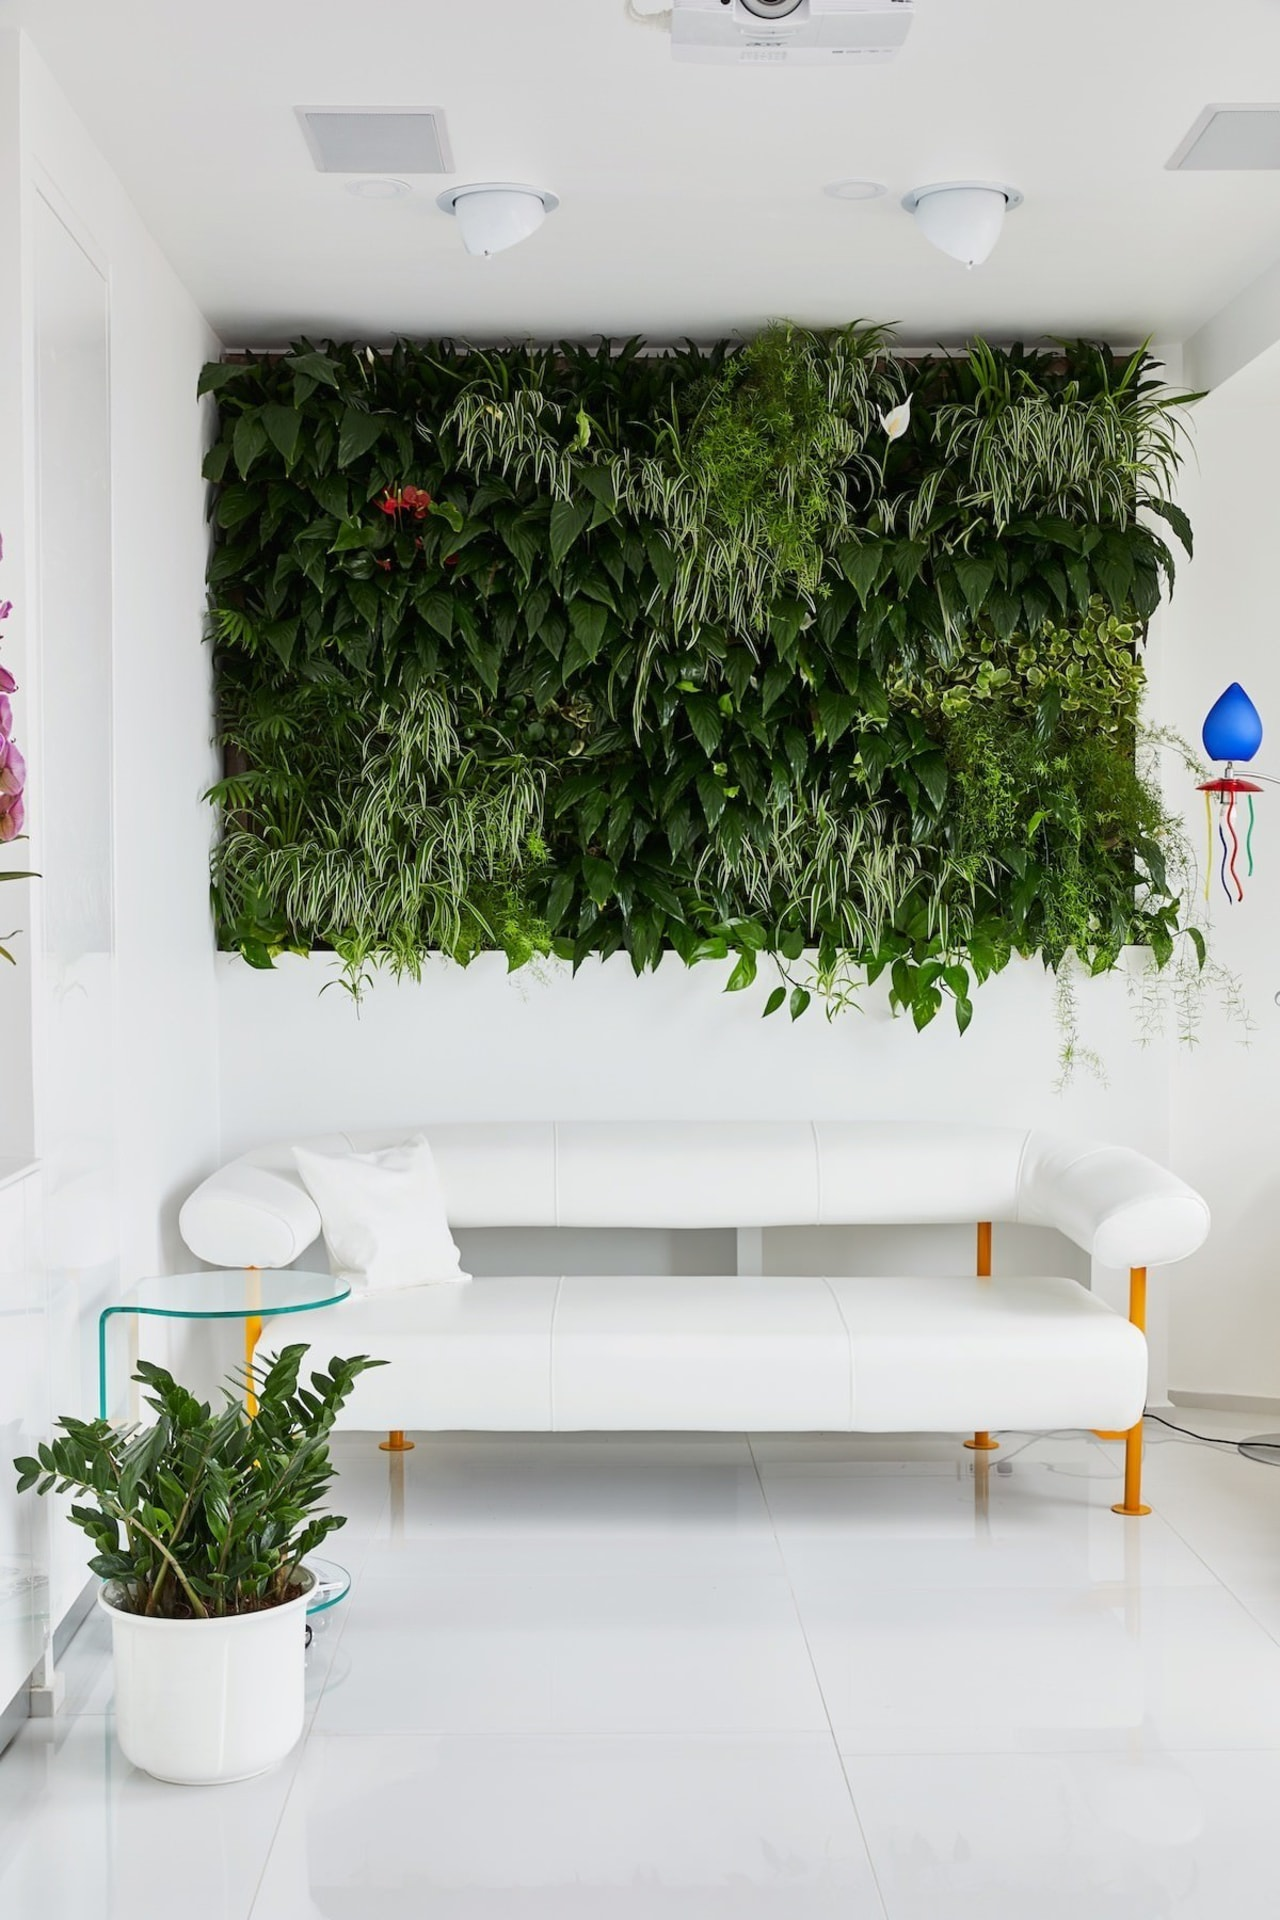 Another view of the green wall flowerpot, interior design, plant, wall, white